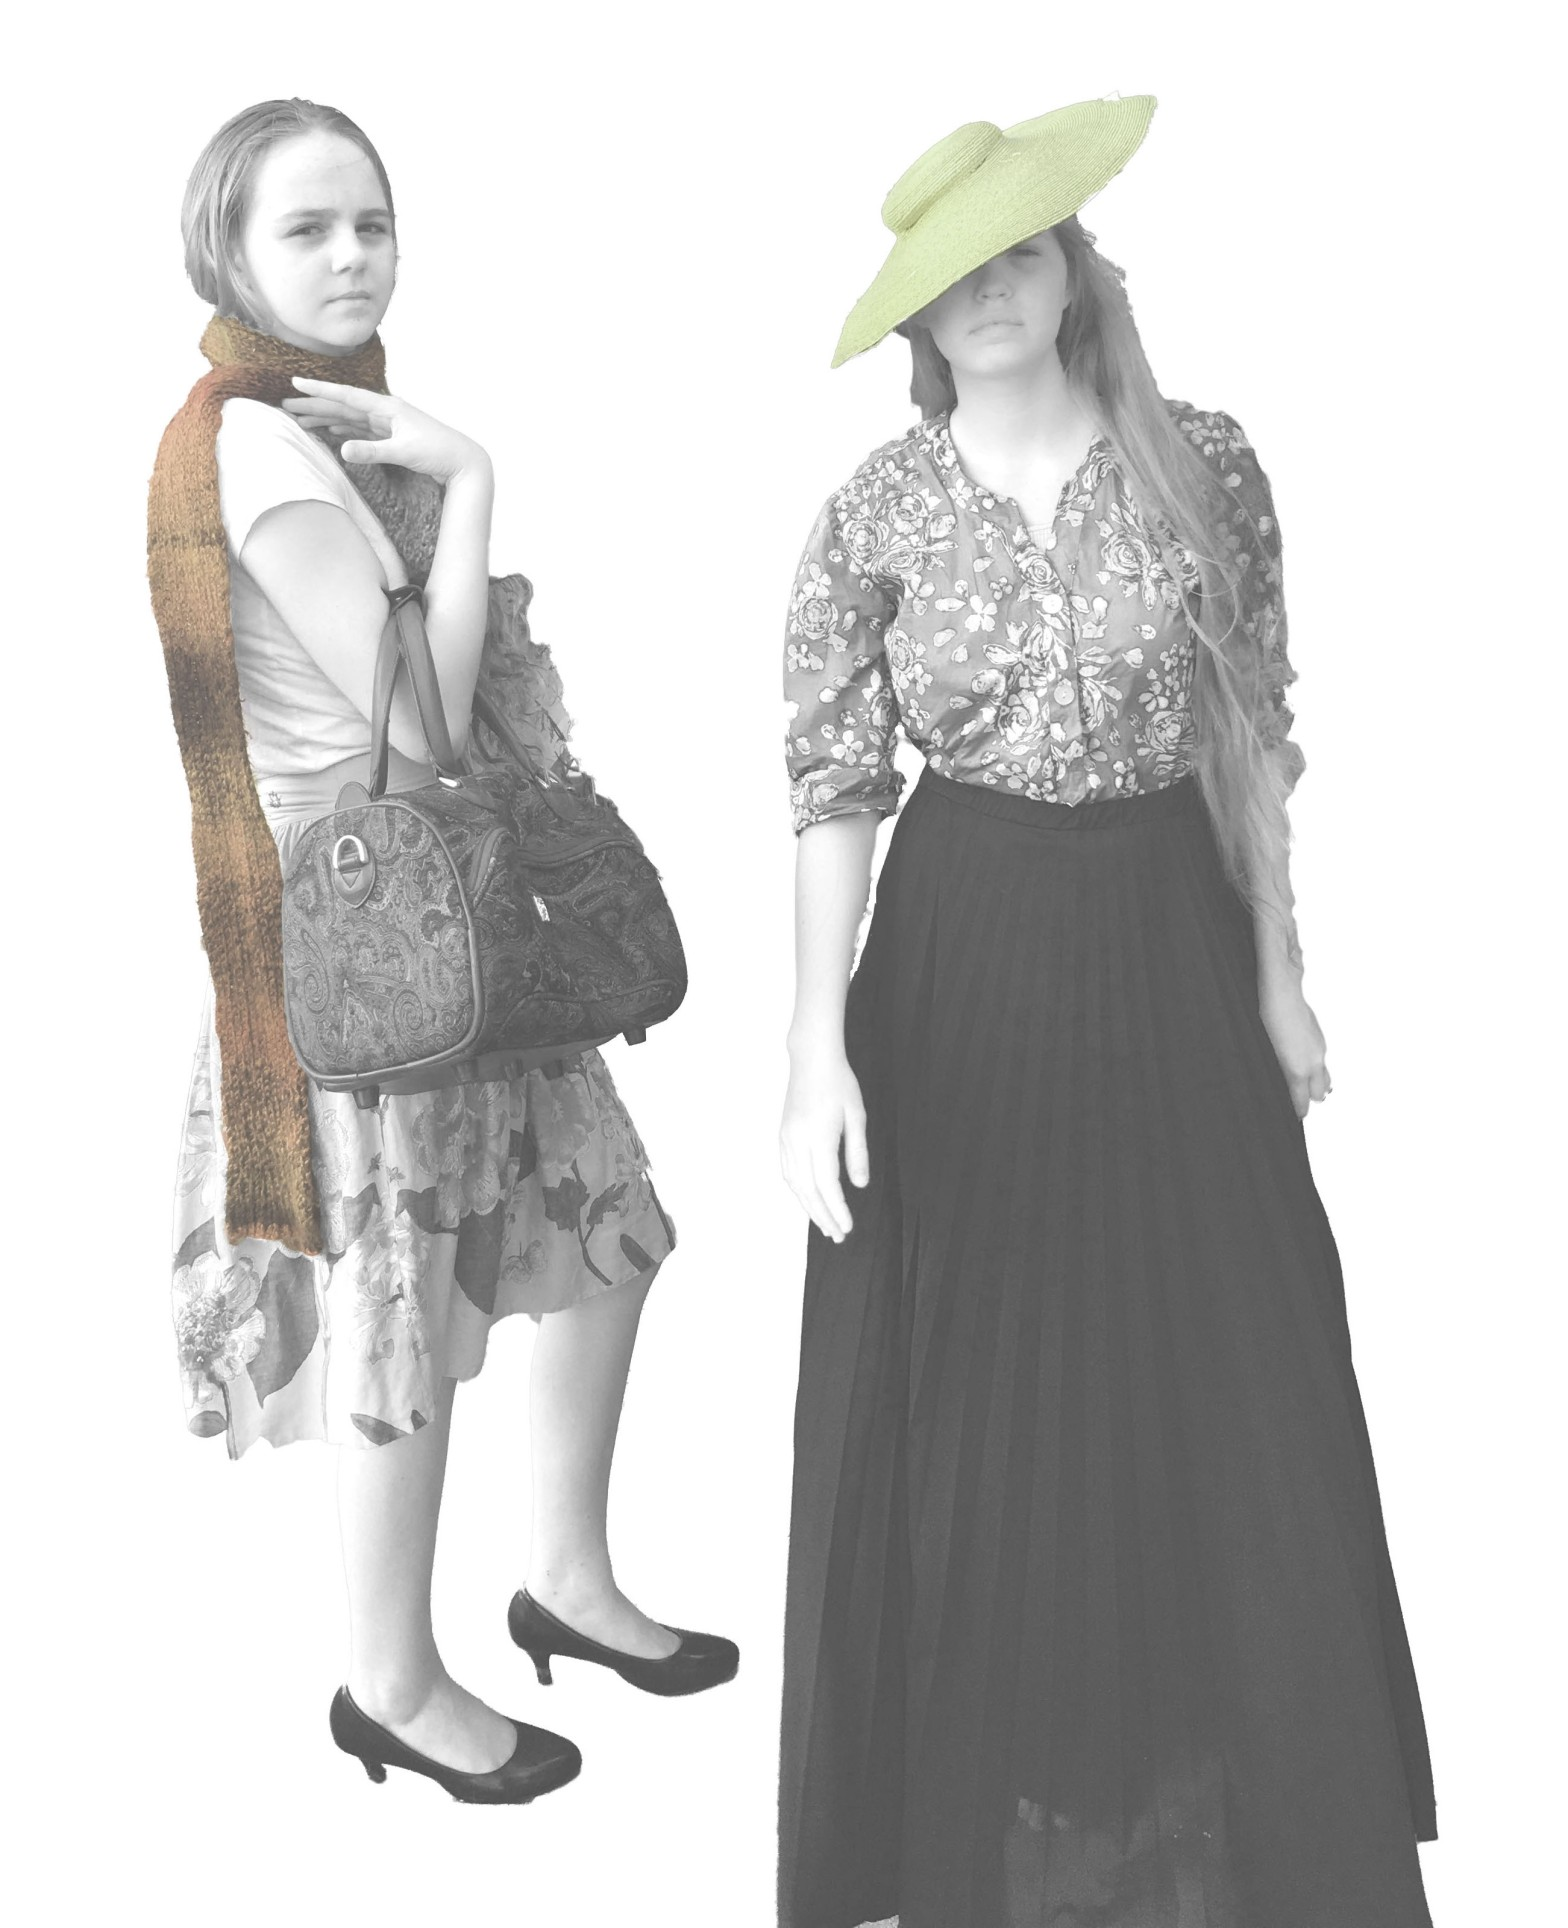 Fashion Illustration brought to life by Skirt Fixation